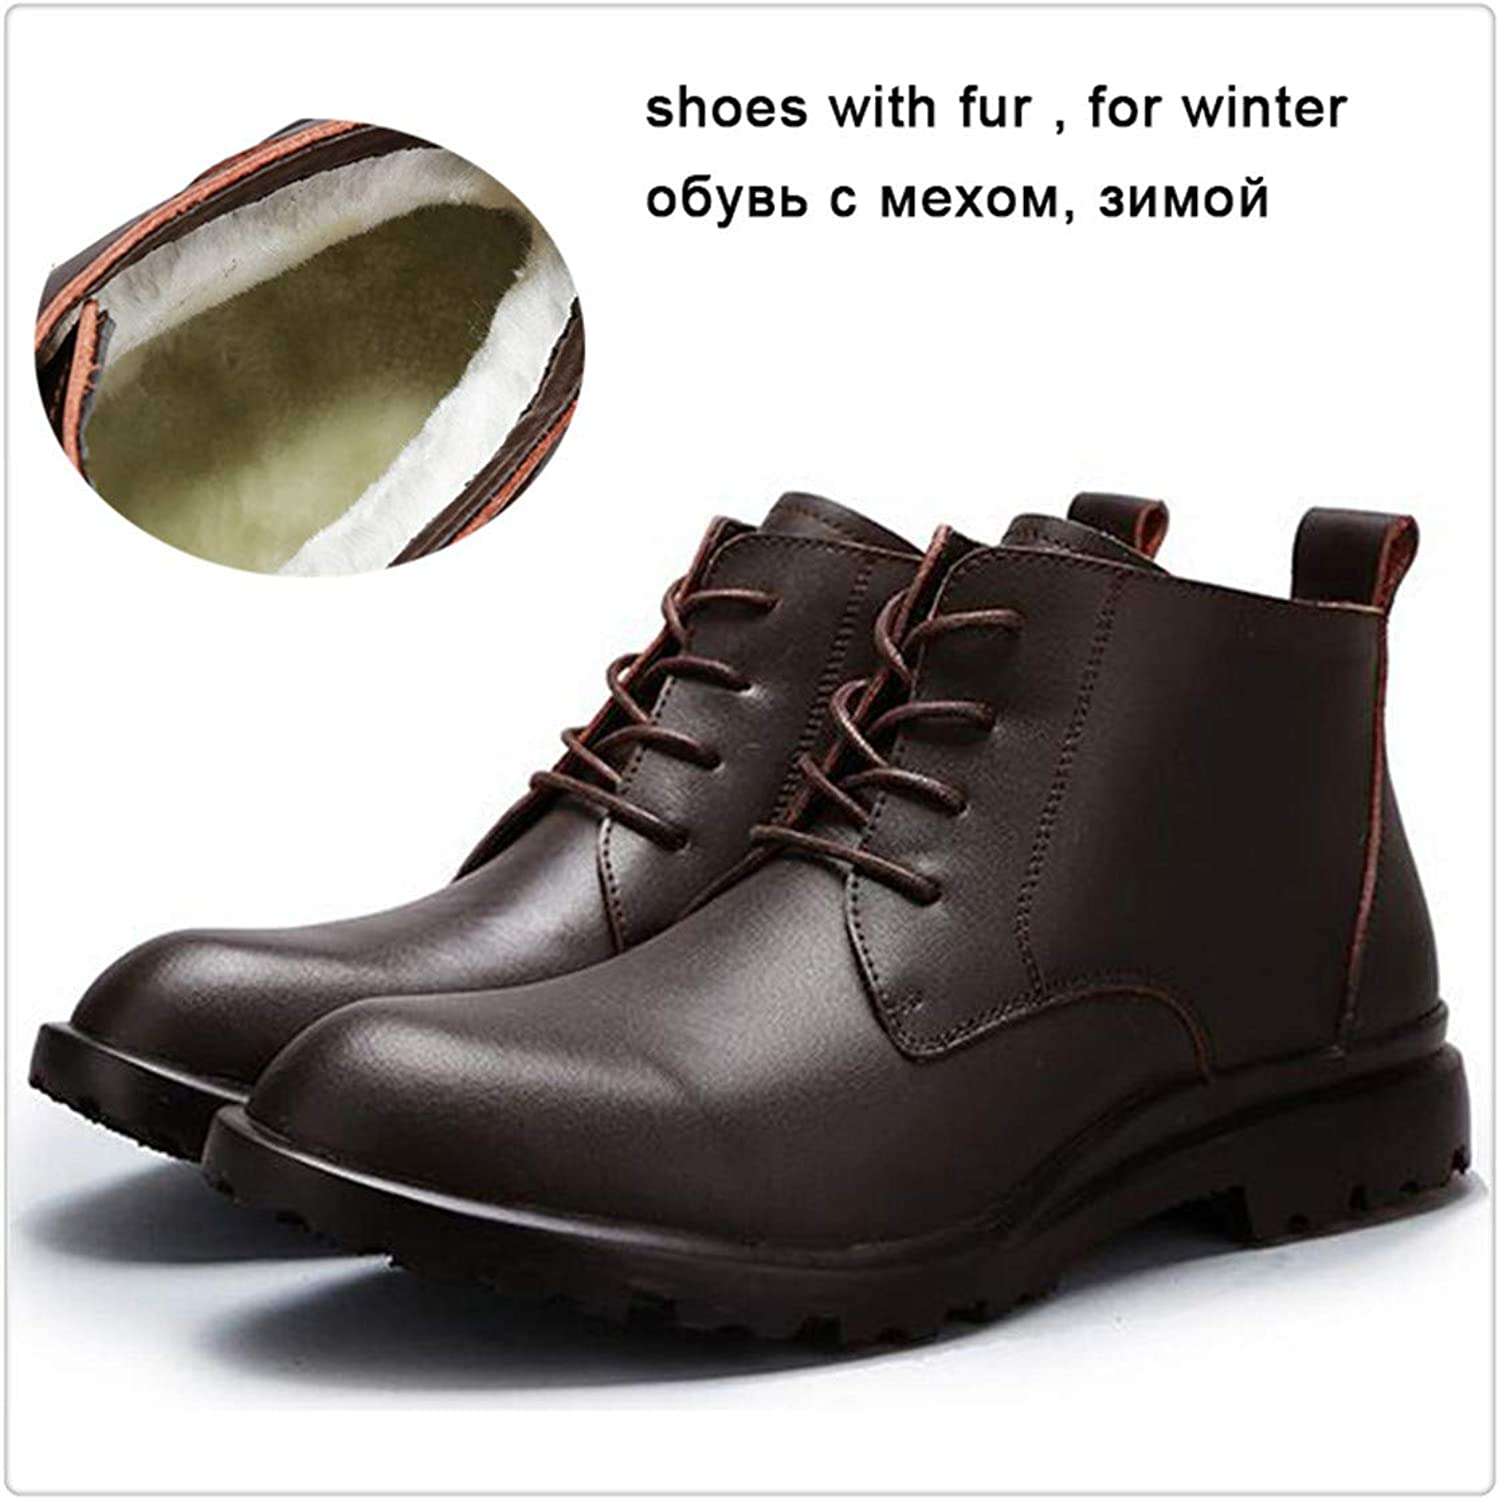 Hangwucha Winter Black Leather Fur Men's Boots Warm Ankle Boots Leather